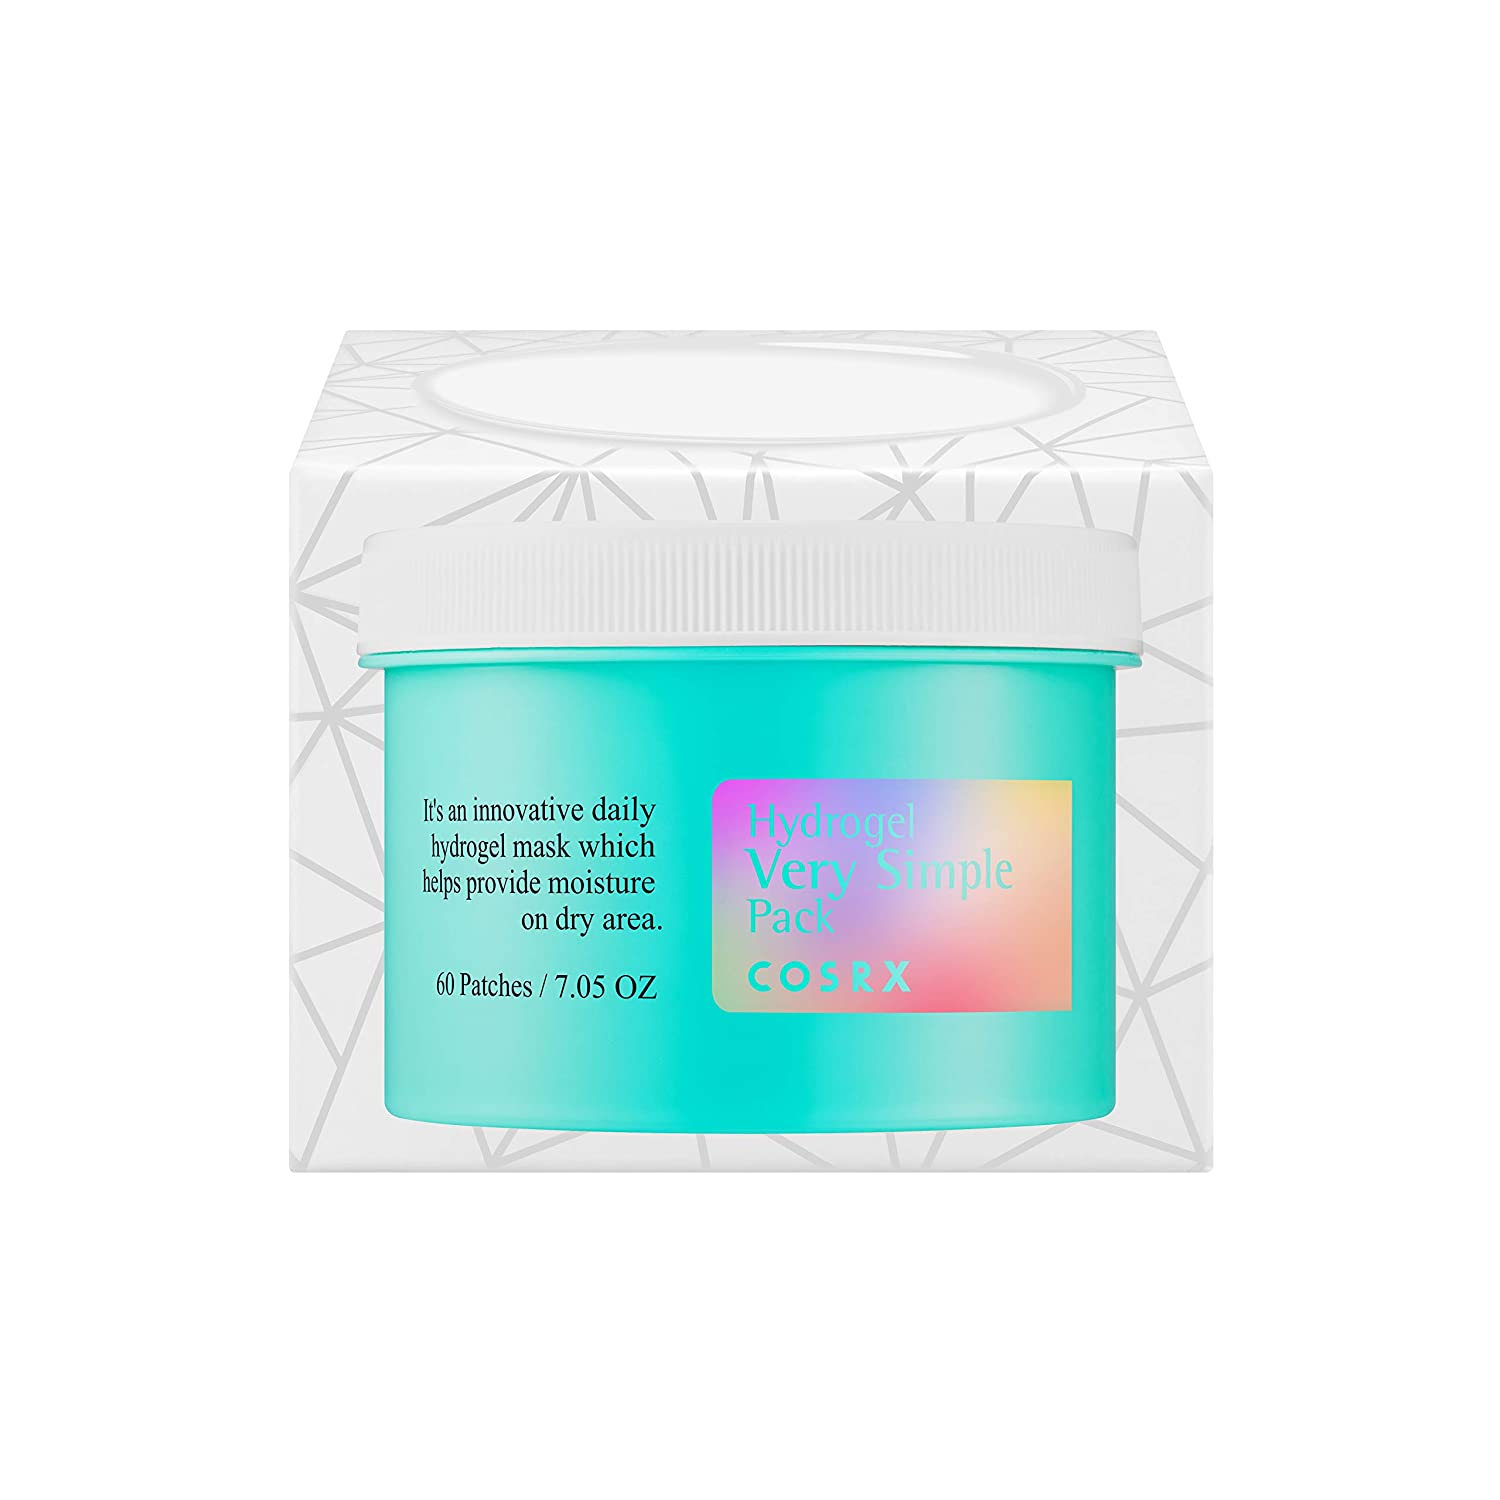 COSRX Hydrogel Very Simple Pack, 60ea 7.05 oz – Quick and Simple Facial Masks that Provide Immediate Cooling Effect, Moisturize Your Skin